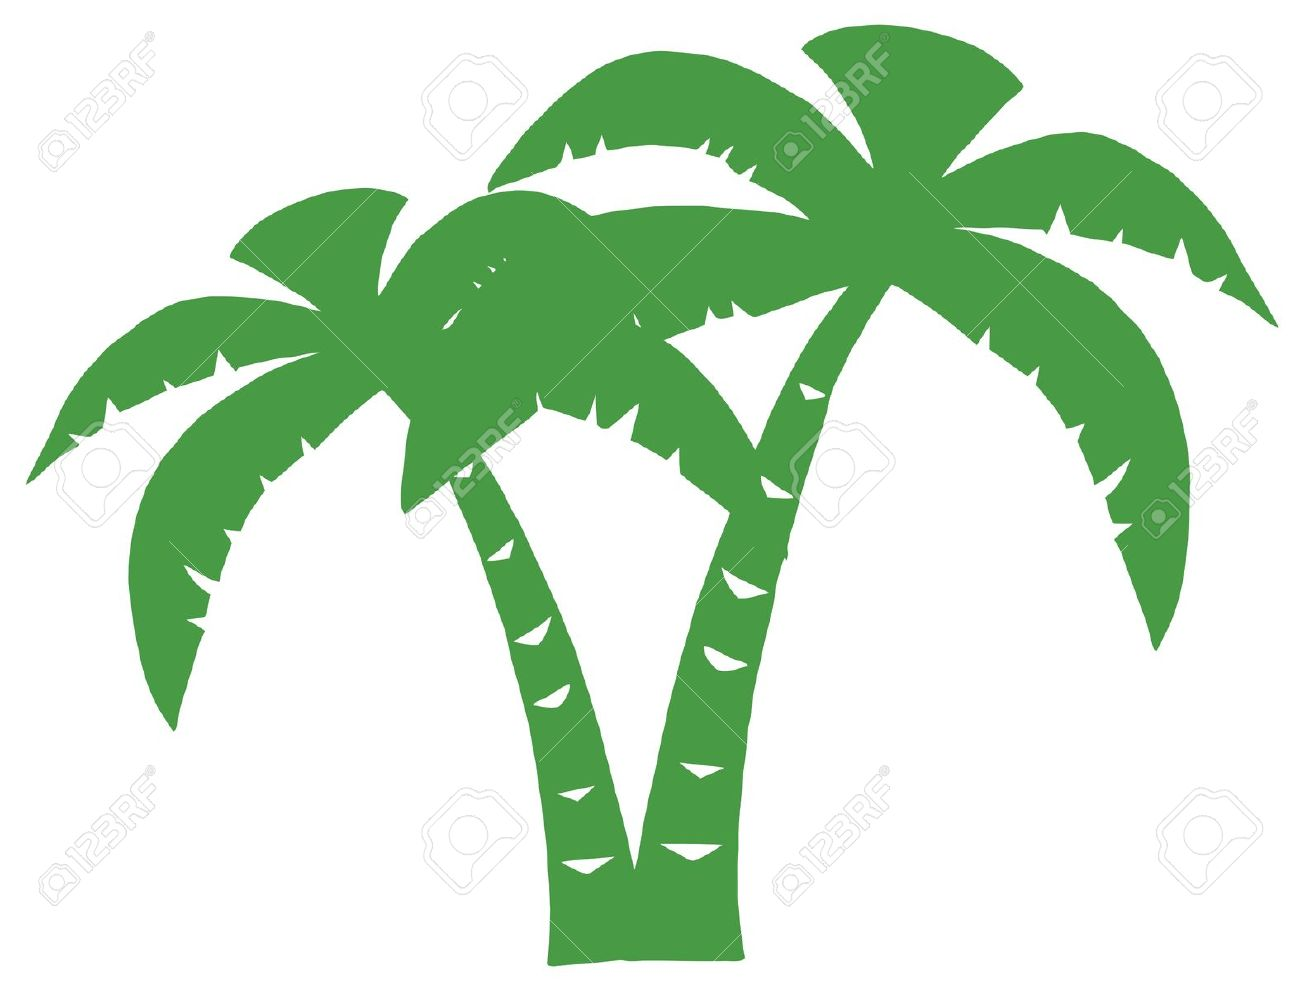 Green Palms Three Silhouette Royalty Free Cliparts, Vectors, And.